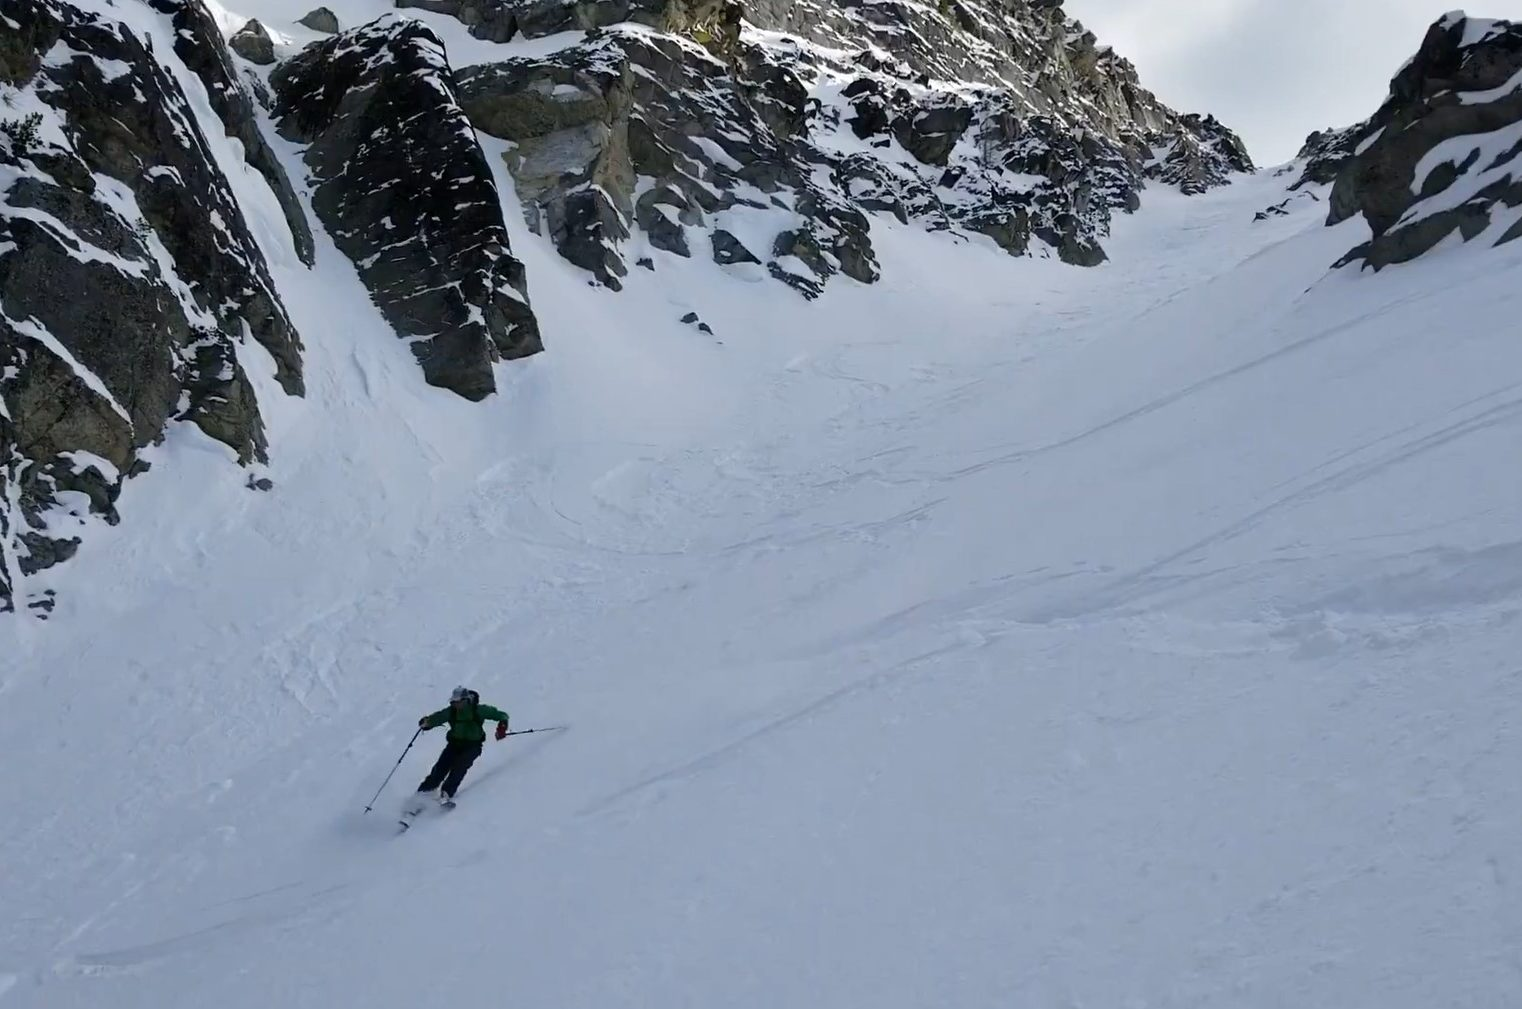 man skiing down the face of a backcountry mountain with craggy black rocks in the background